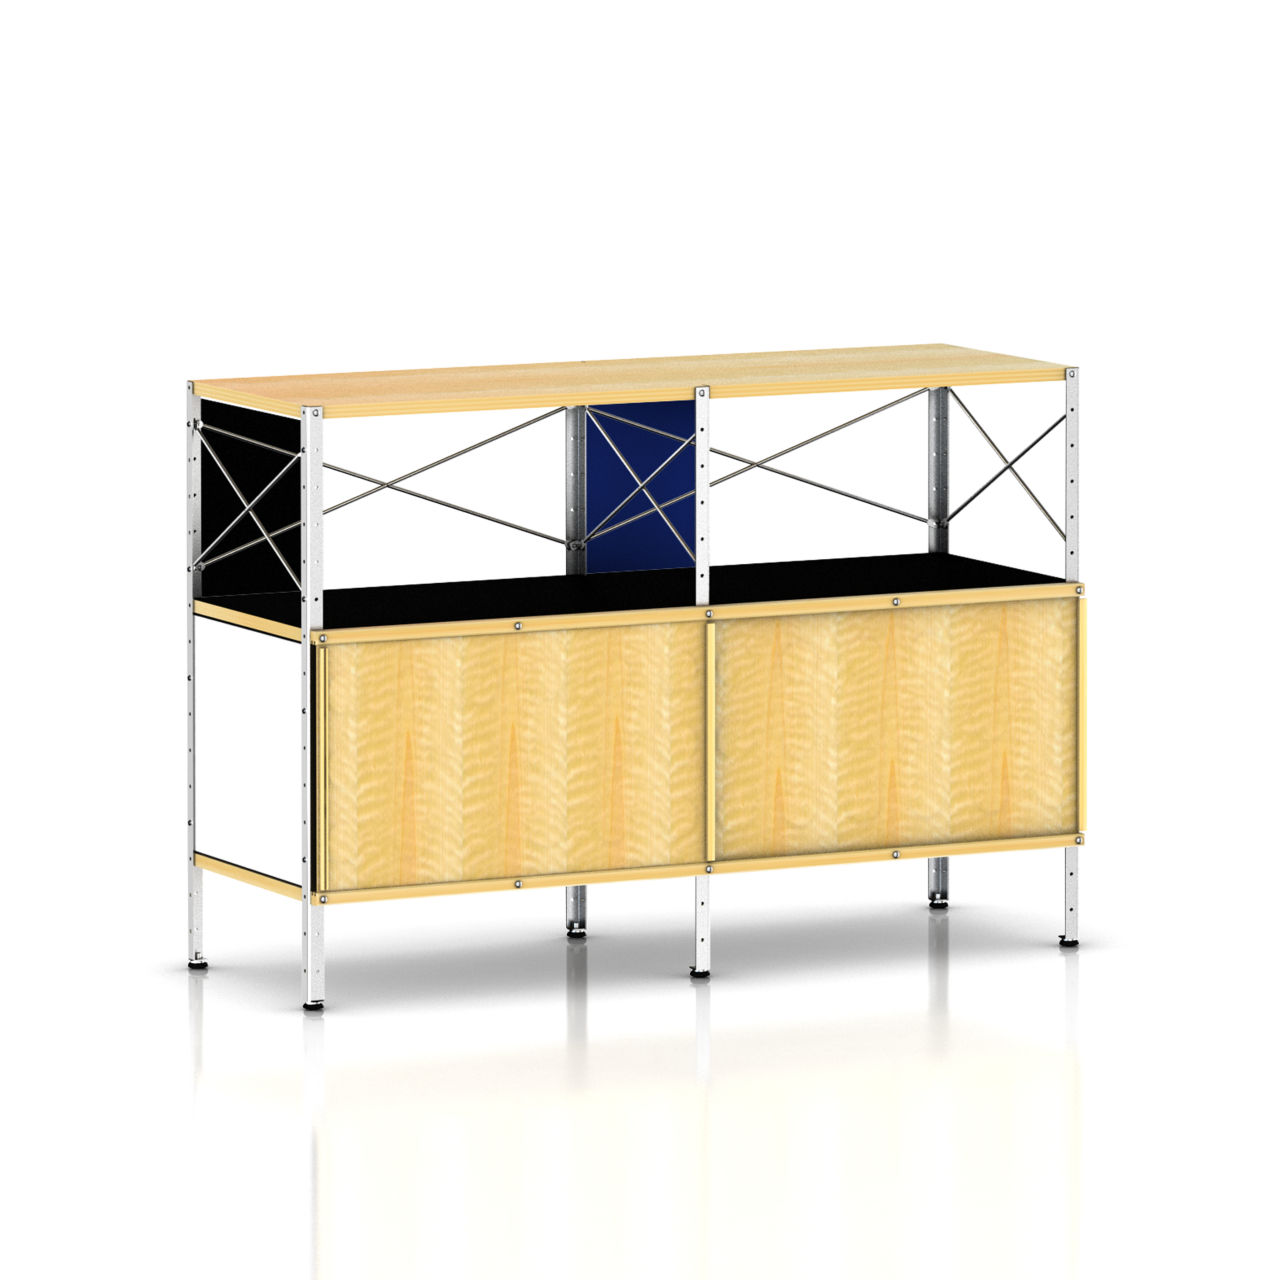 Eames Storage Unit 2 x 2 with Doors in Vibrant by Herman Miller